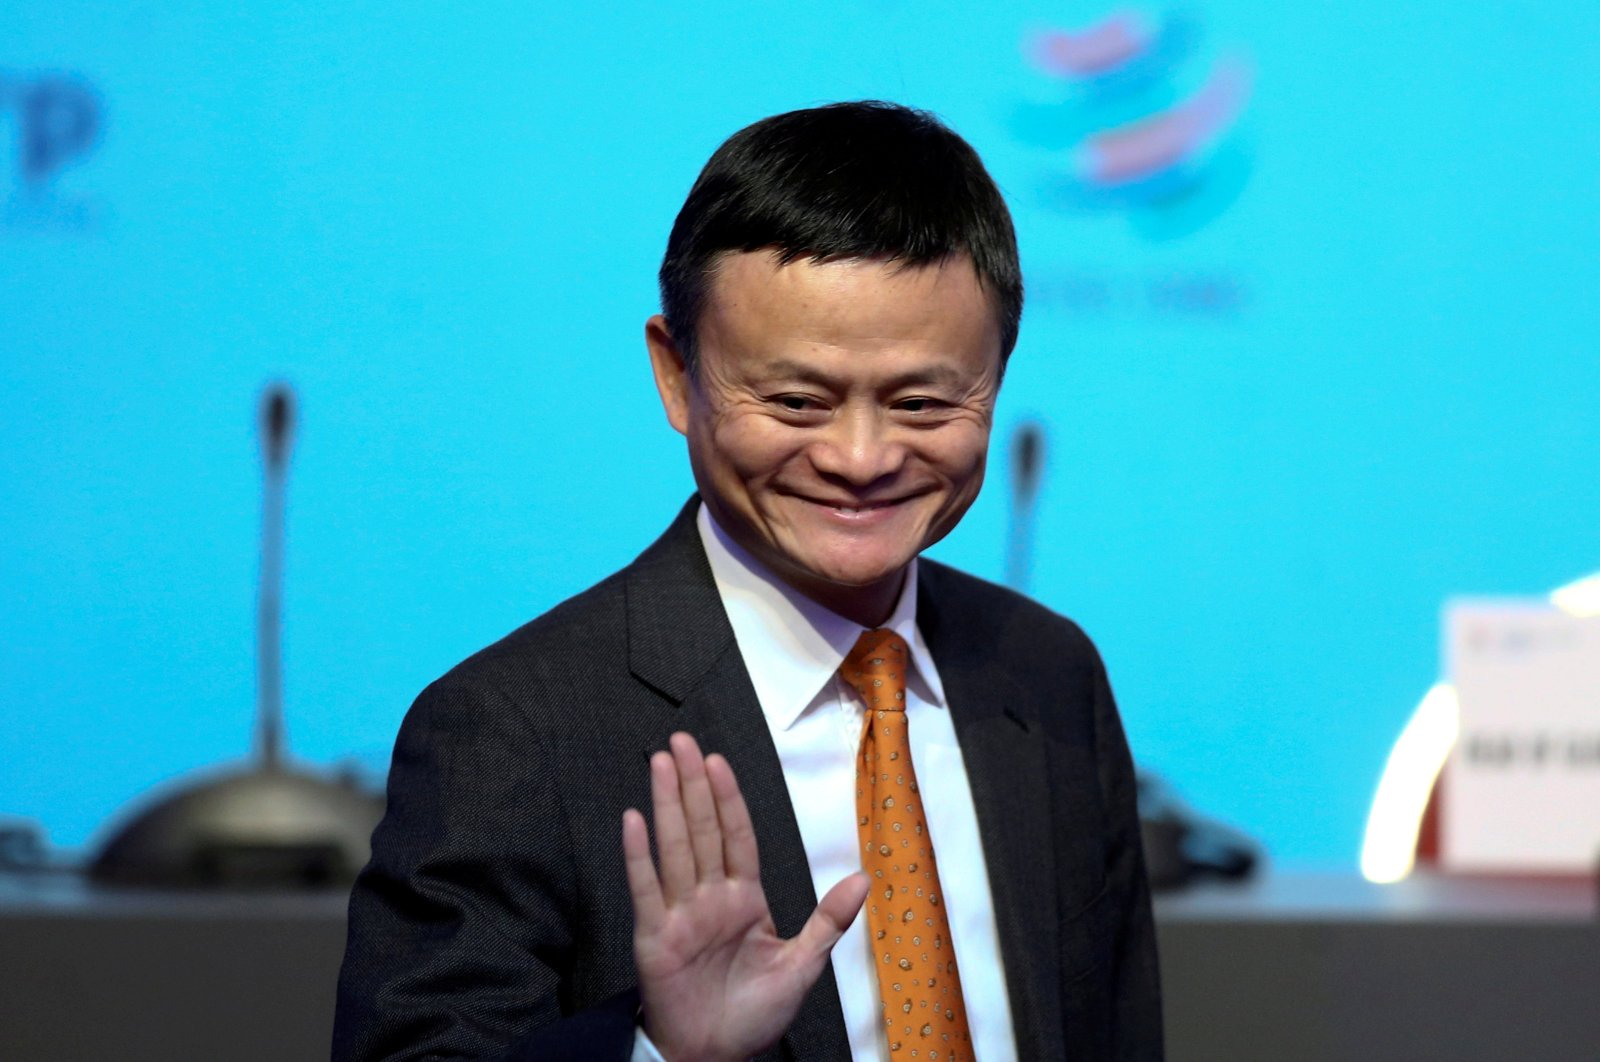 Alibaba Group Executive Chairman Jack Ma gestures as he attends the 11th World Trade Organization's ministerial conference in Buenos Aires, Argentina, Dec. 11, 2017. (Reuters Photo)